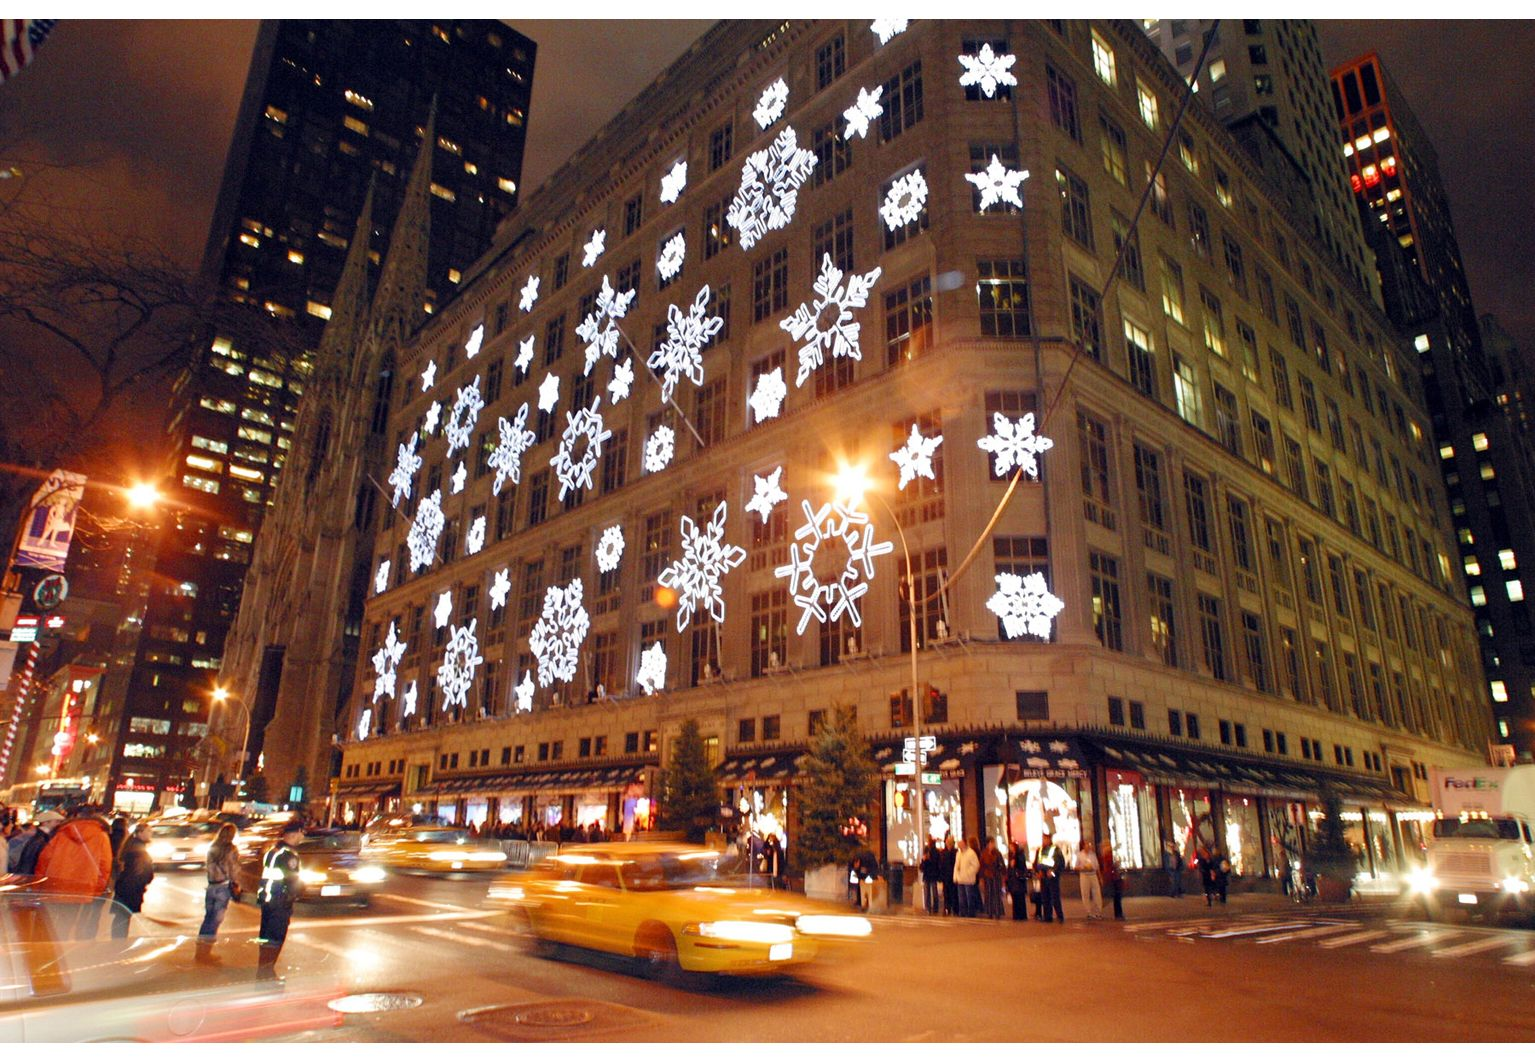 Saks Fifth Avenue! This heritage department store put 5th